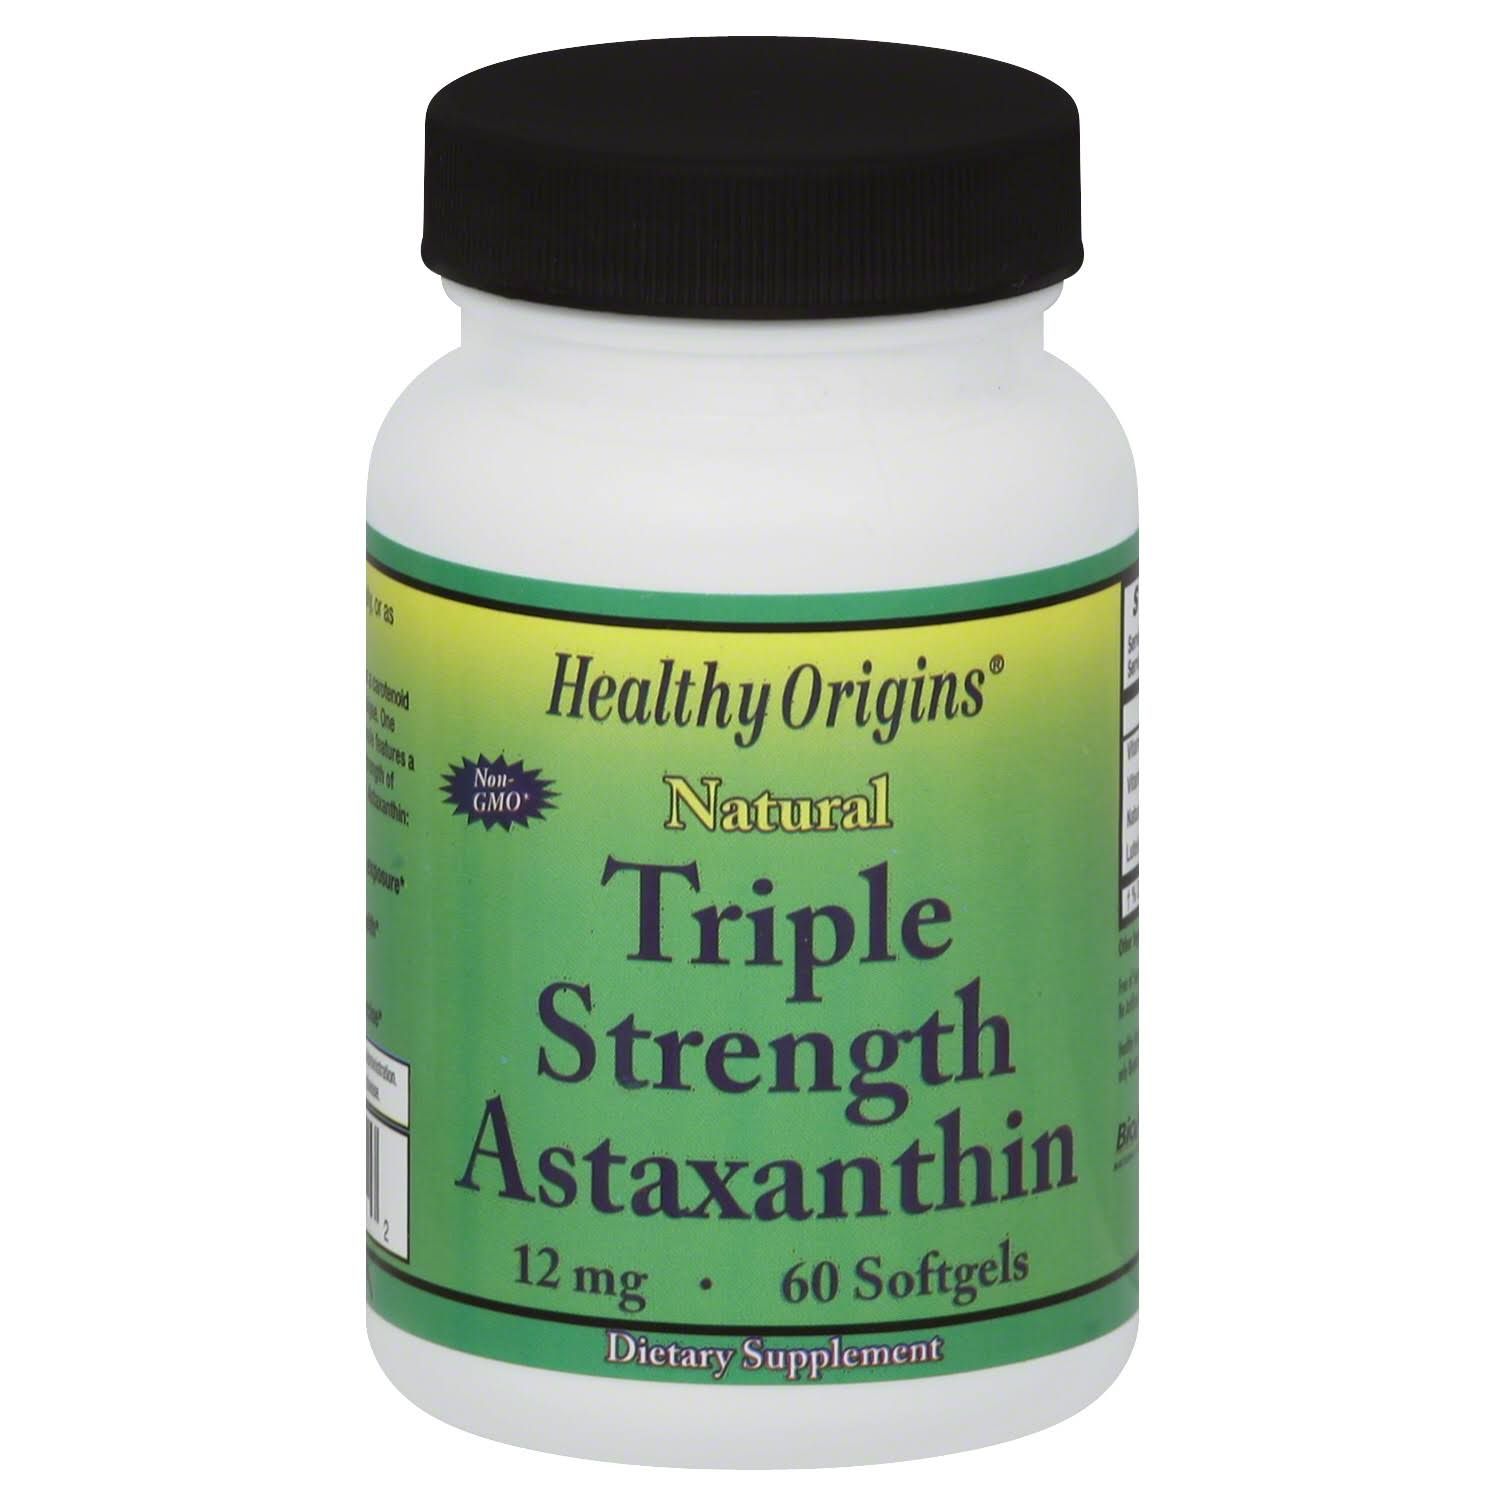 Healthy Origins Natural Triple Strength Astaxanthin - 60 Softgels